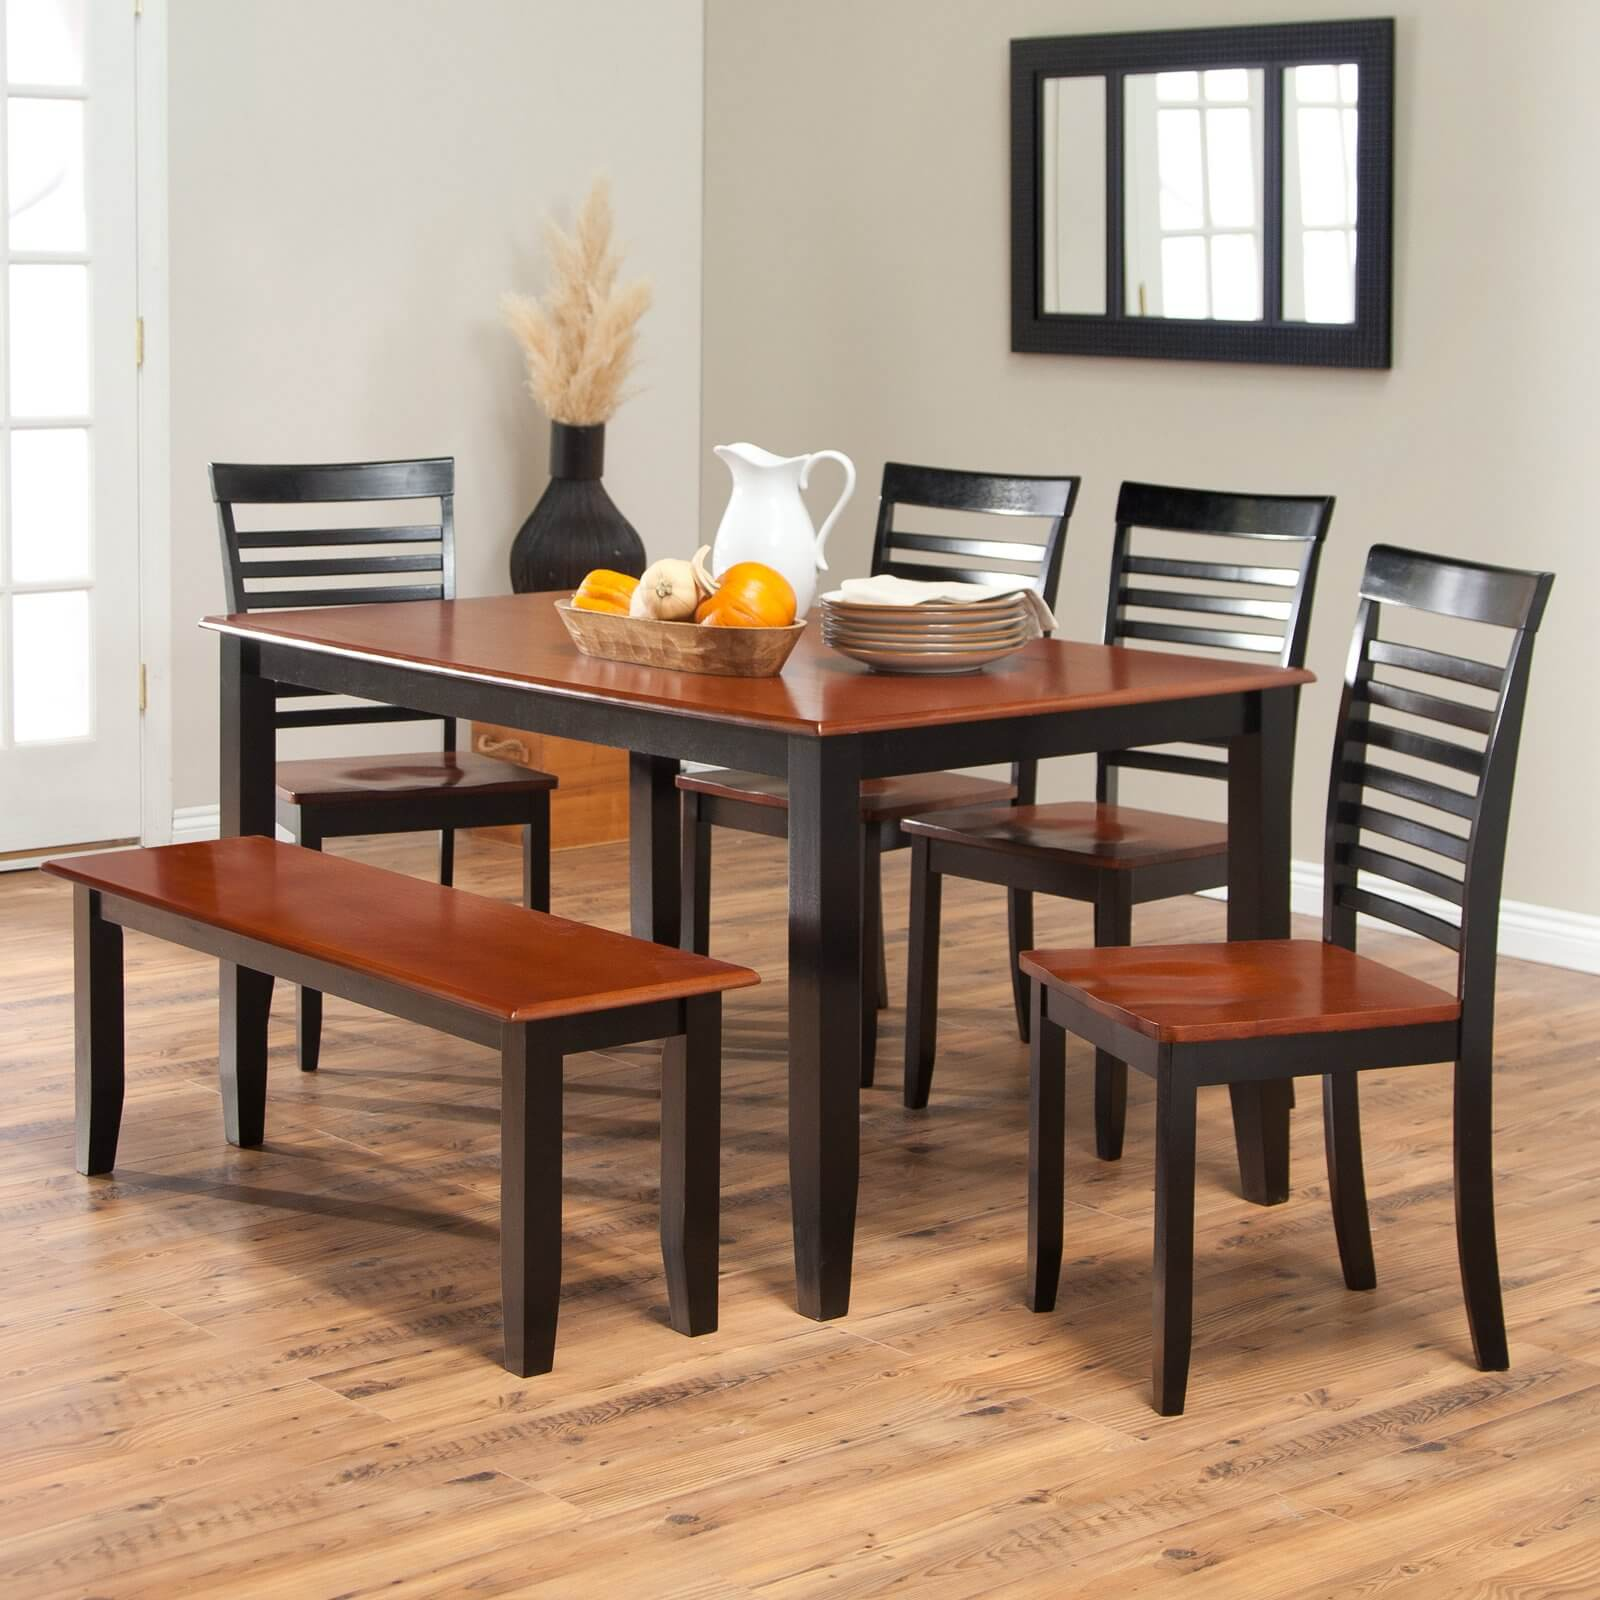 Simple two-toned dining set with bench. The seats and table top are cherry & 26 Dining Room Sets (Big and Small) with Bench Seating (2018)